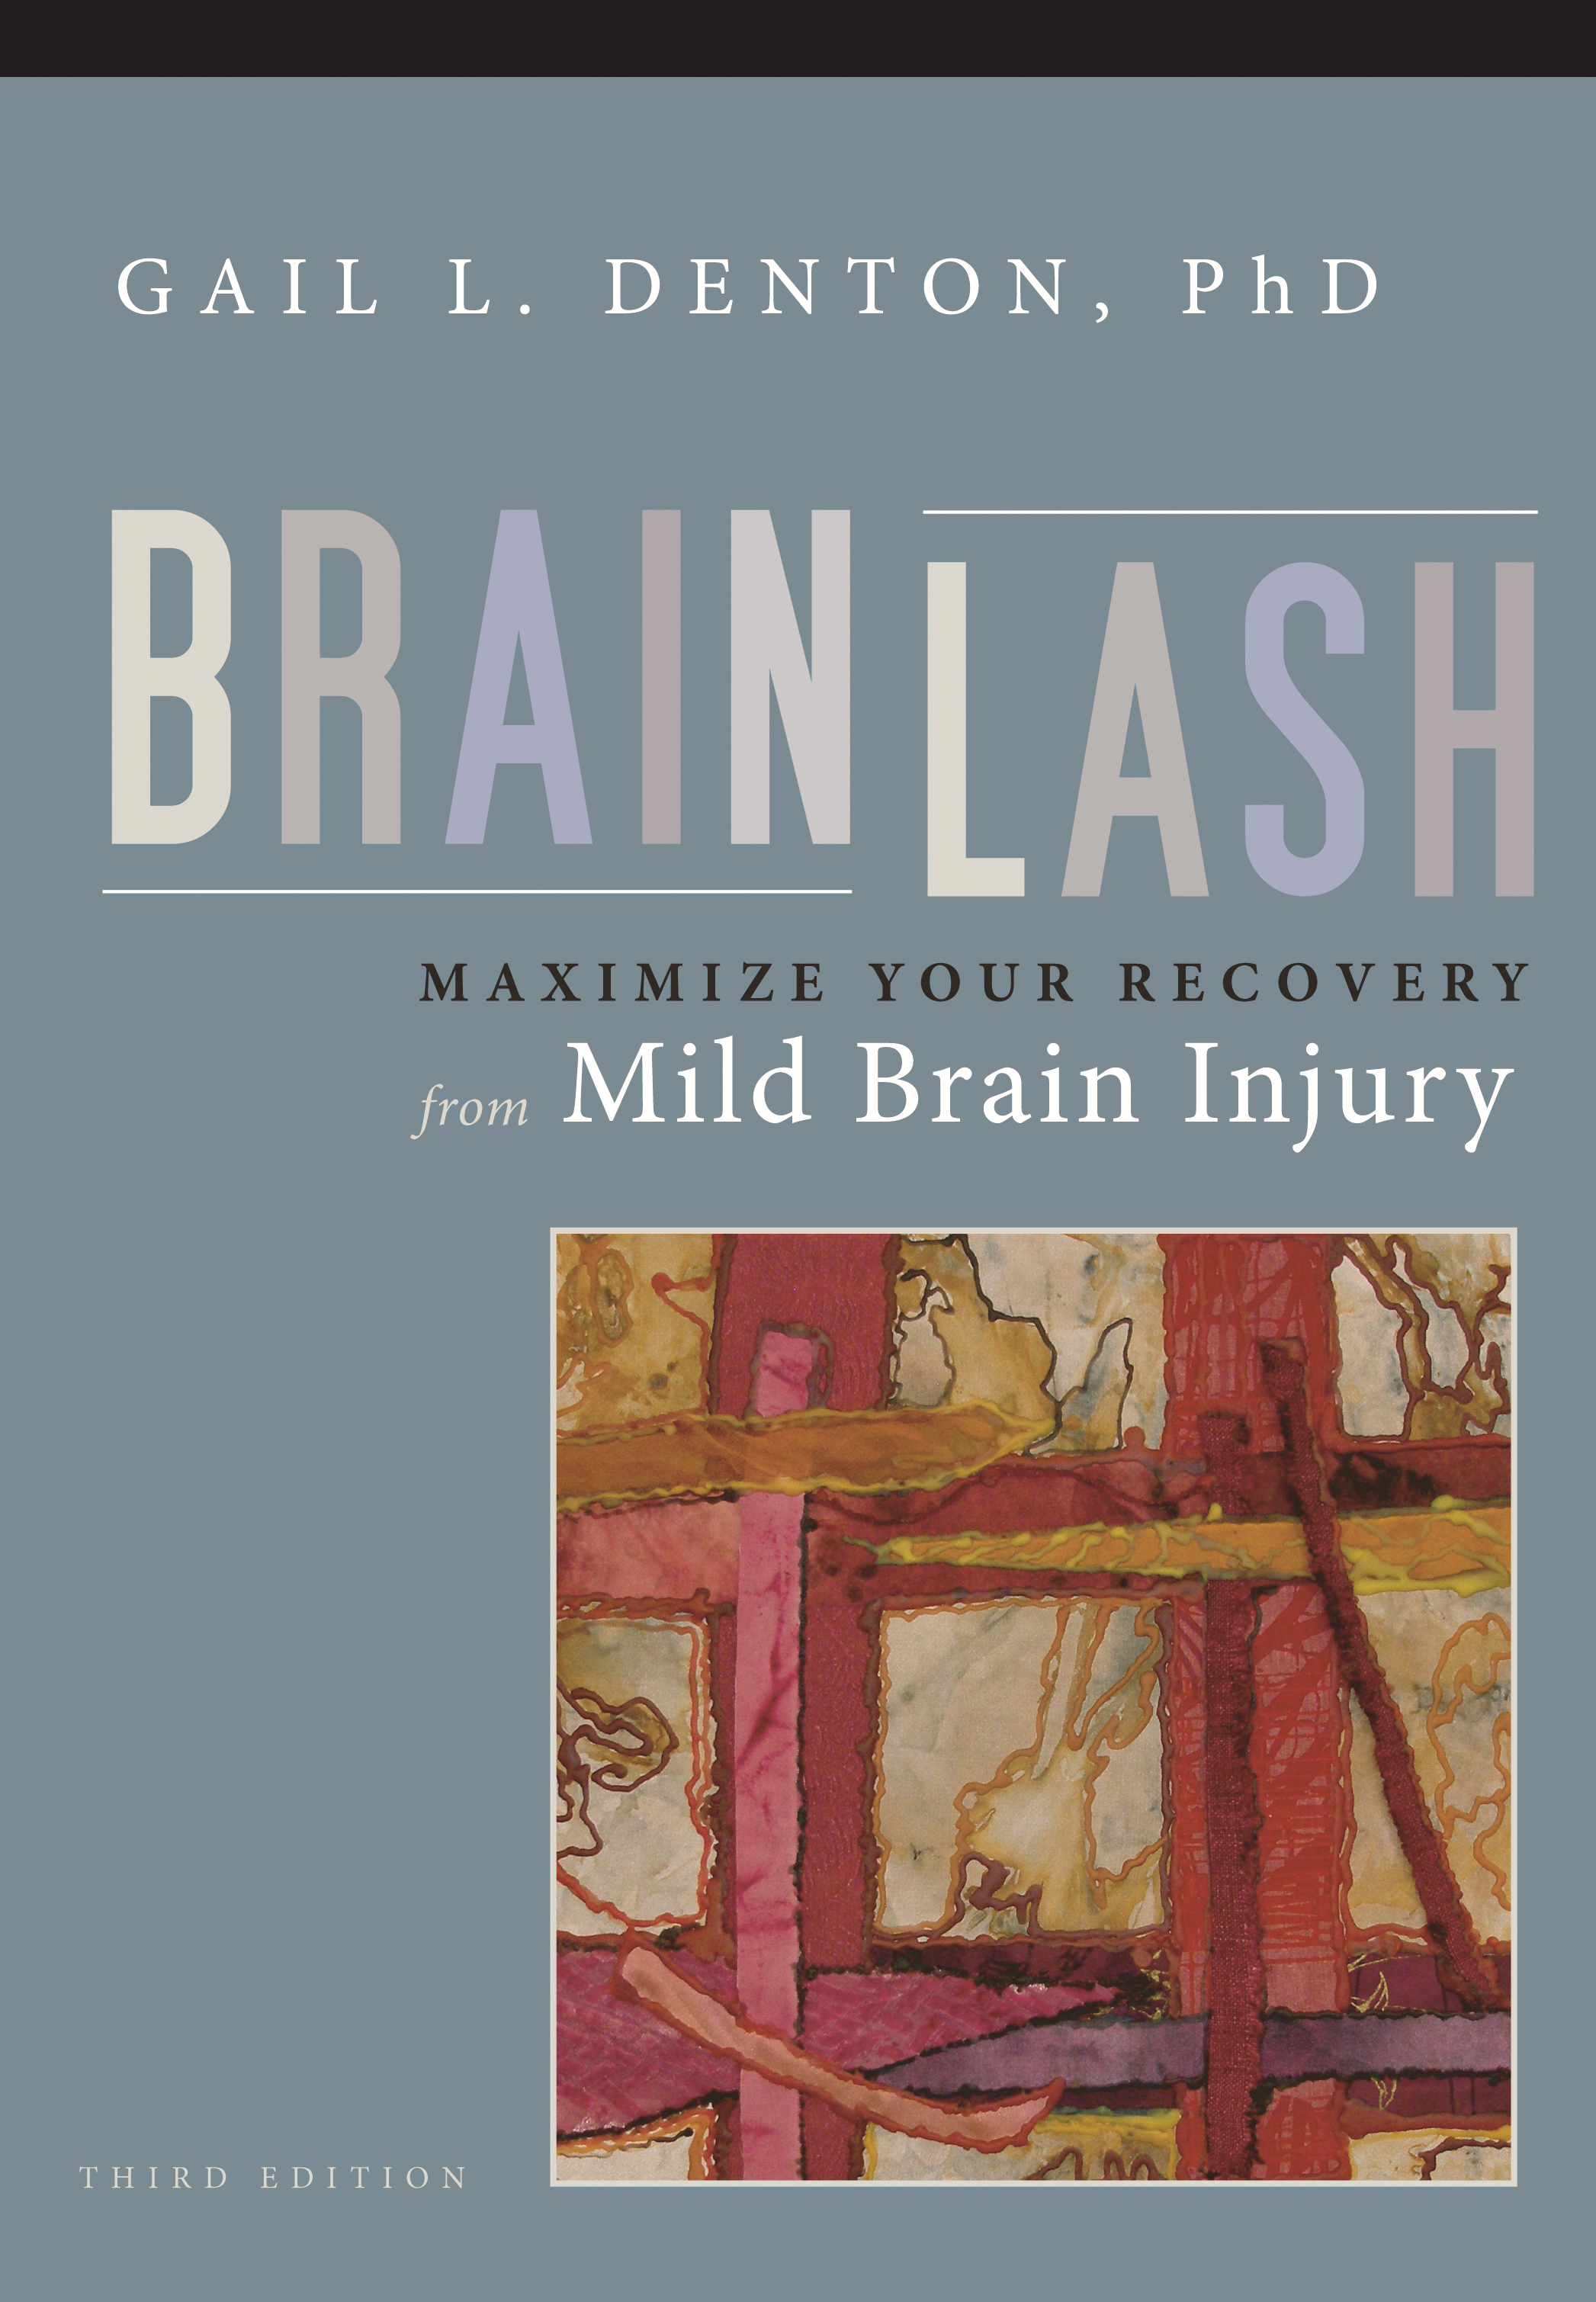 Brainlash By: Dr. Gail Denton,Dr. Gail L. Denton